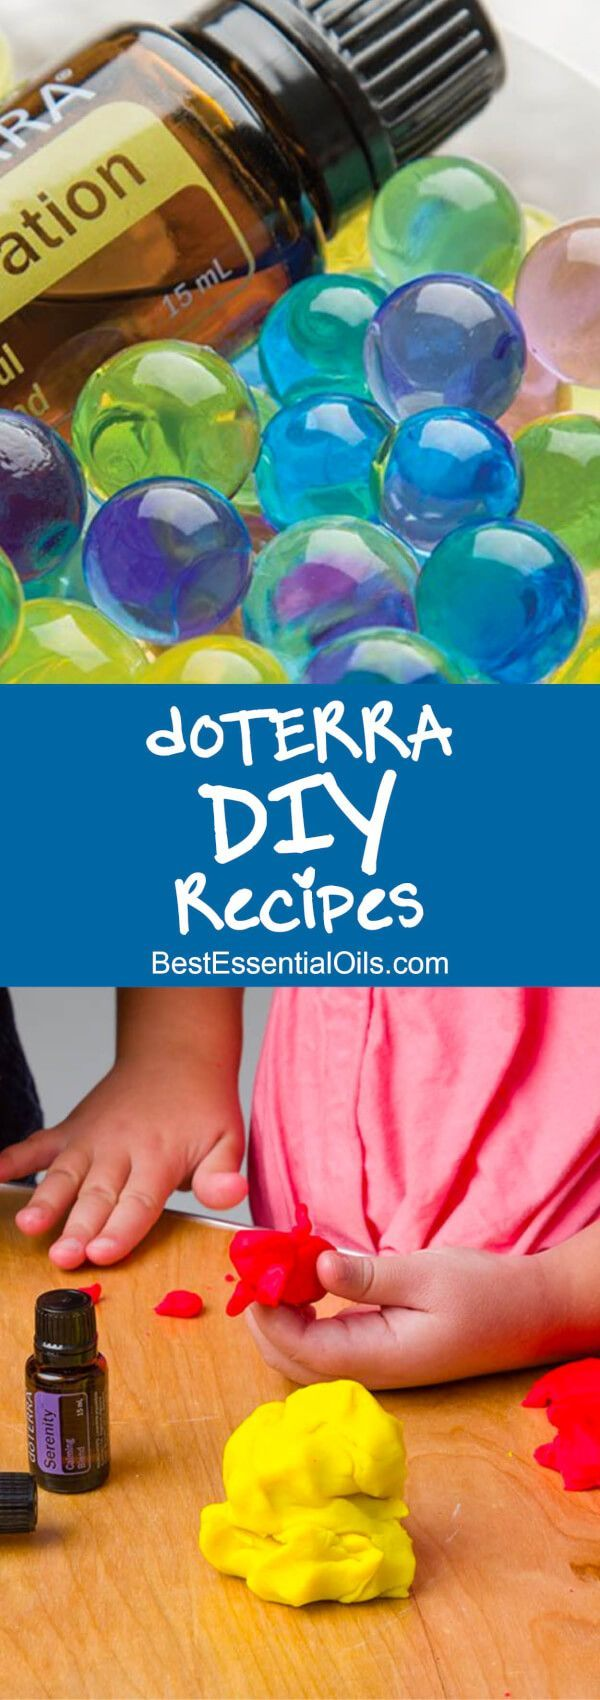 The Best Natural and Helpful doTERRA DIY Recipes